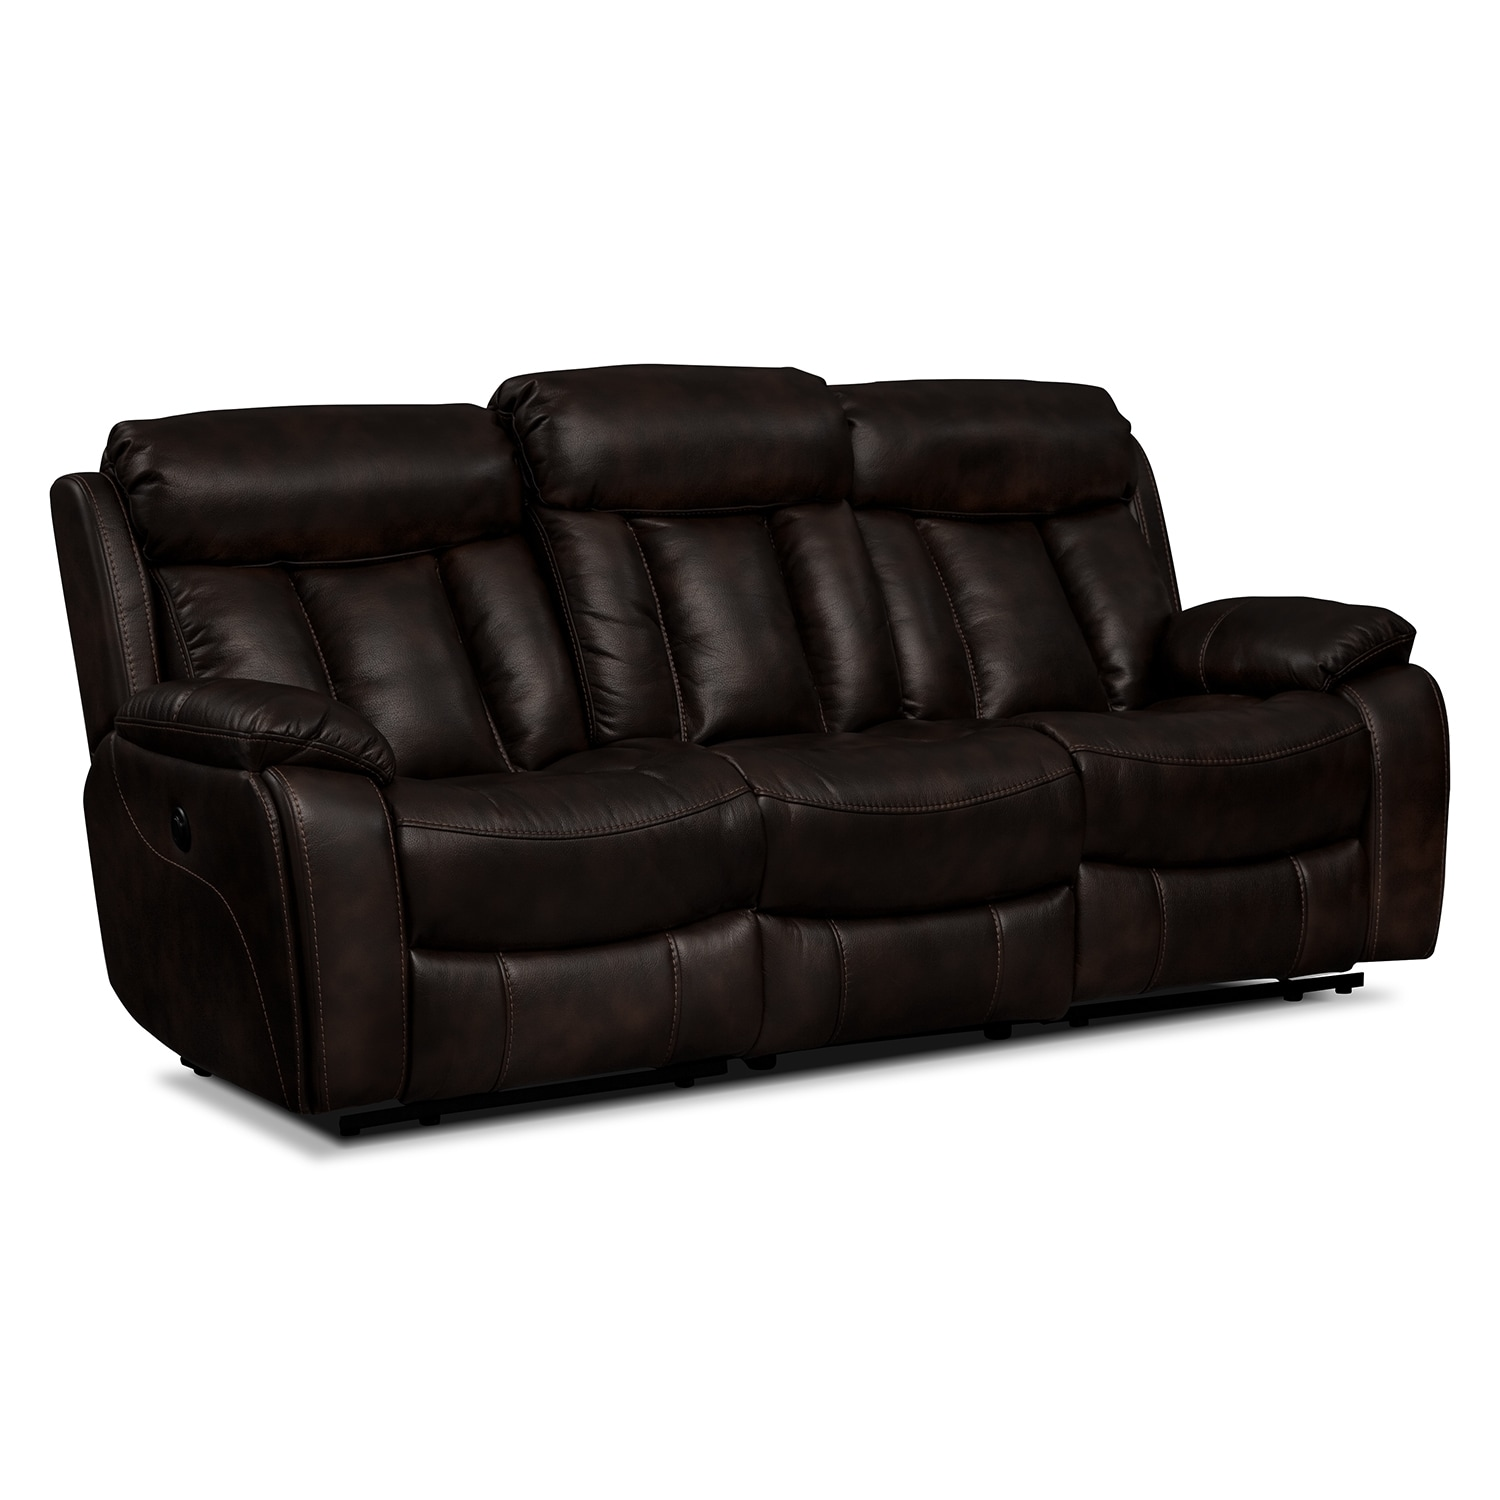 Diablo Power Reclining Sofa Walnut